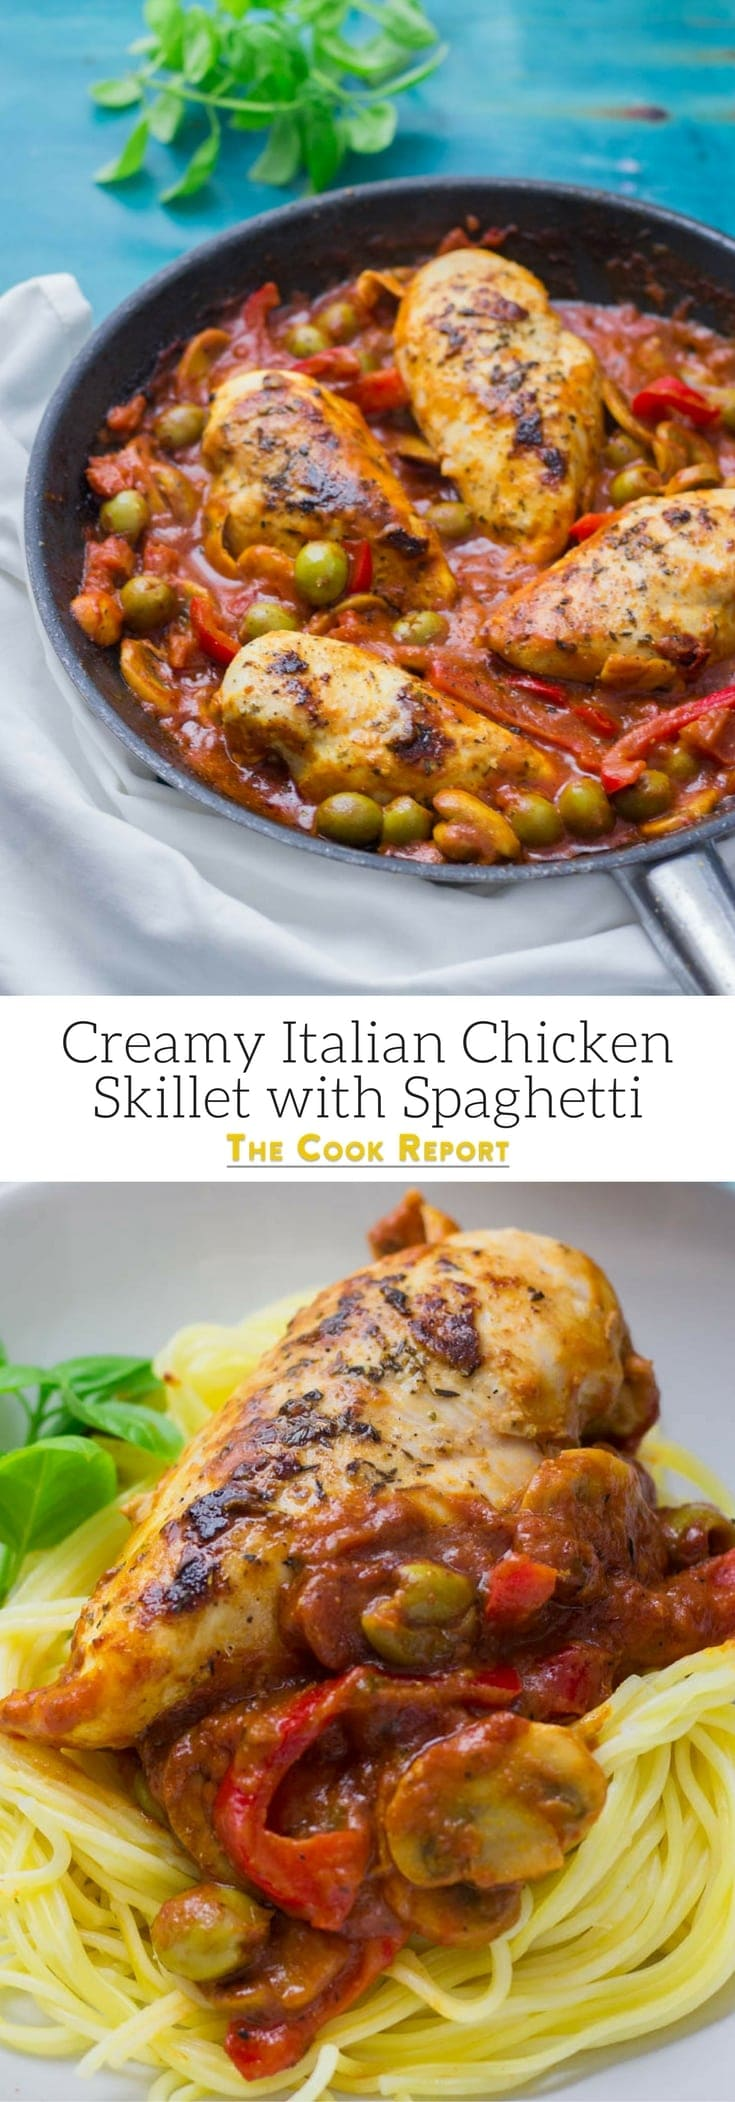 Looking for a new pasta dinner? This creamy Italian chicken skillet is the perfect thing to put over spaghetti. It's so easy and is made all in one skillet!